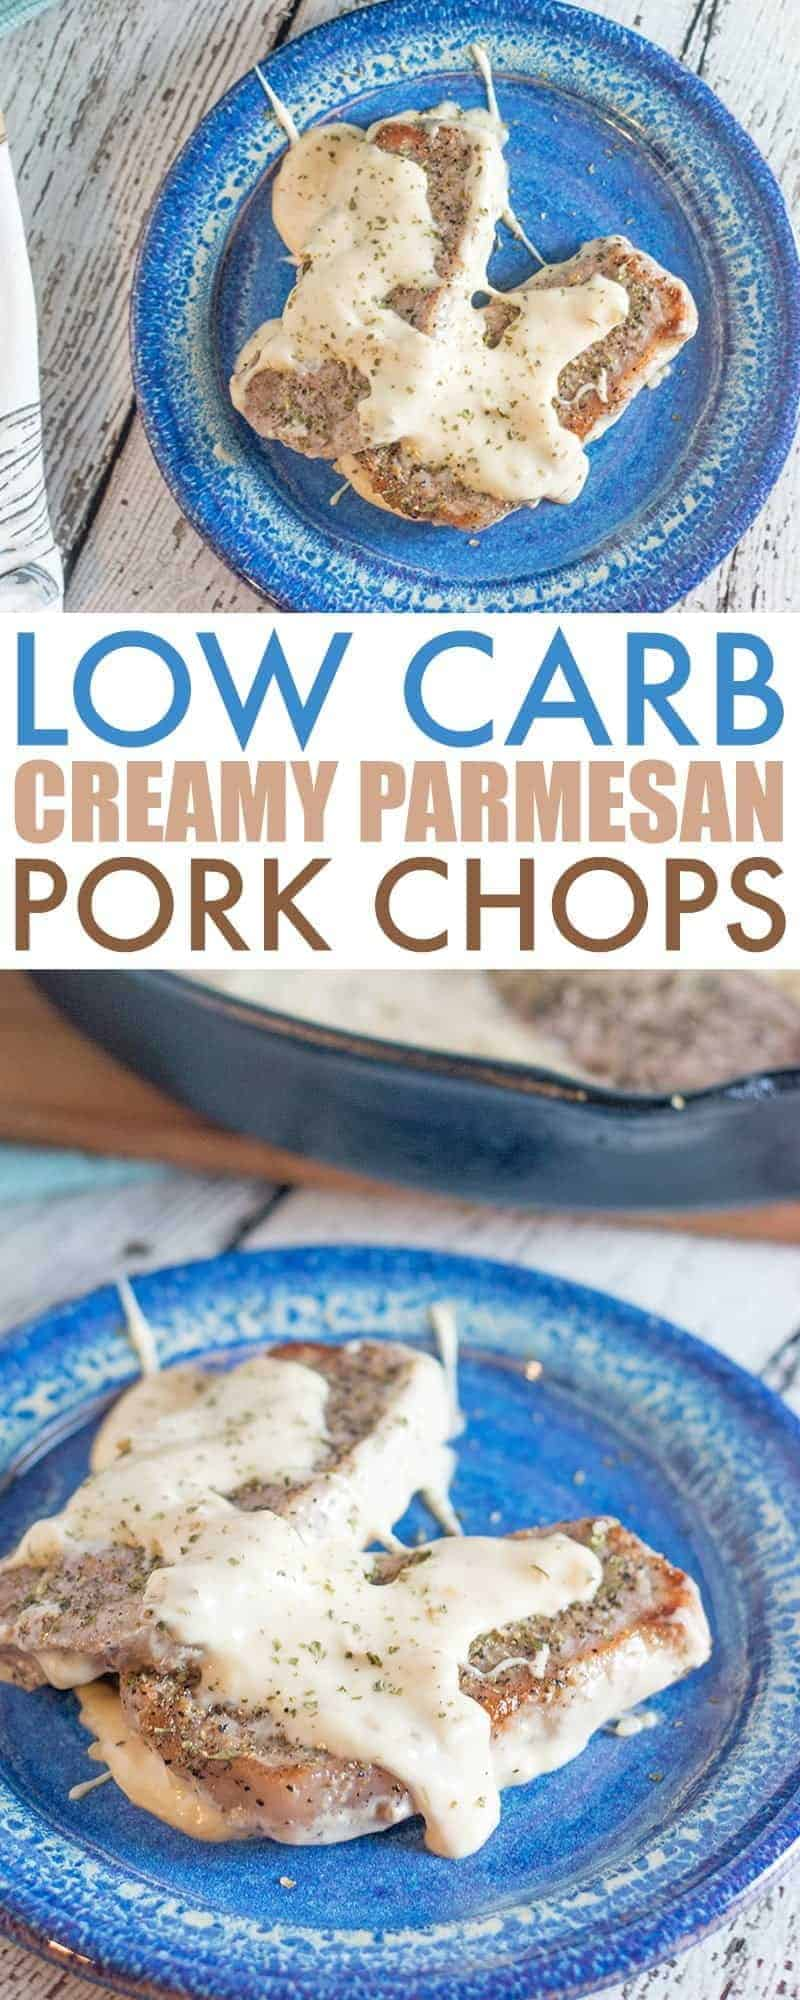 Two pictures of low carb pork chops recipe with text in-between with the name of the recipe.